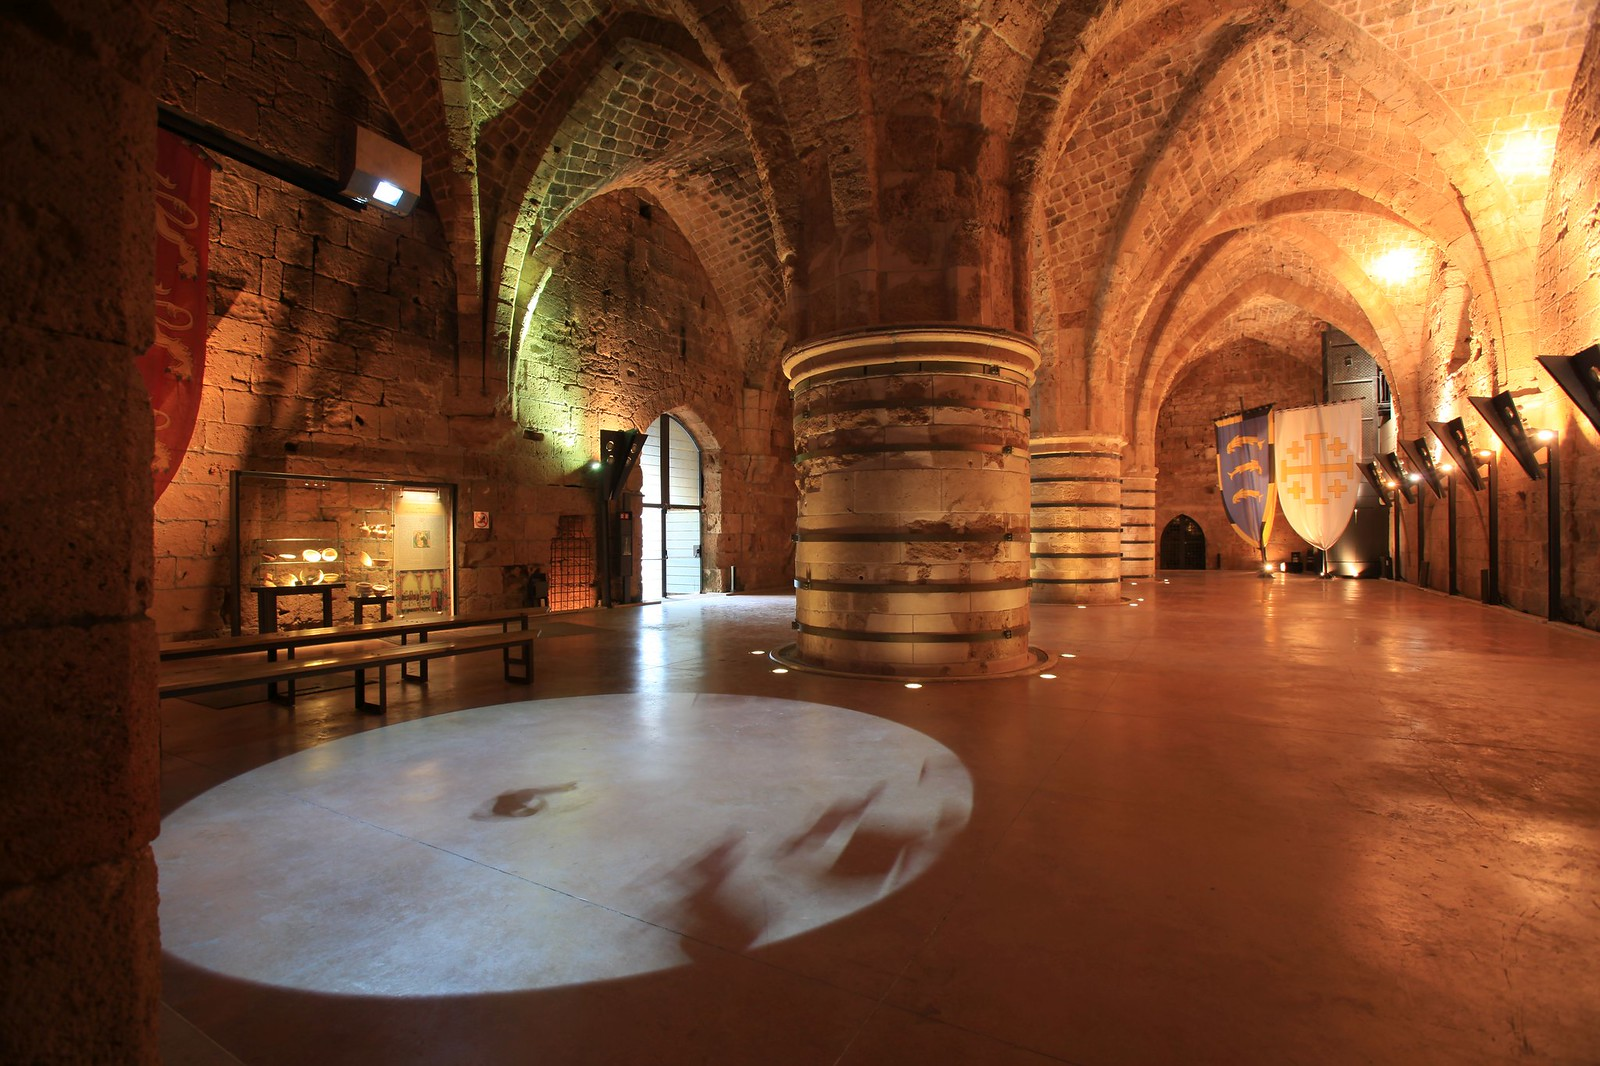 The Crusader Dining Hall at the Hospitaller Fortress. IMG 954 - Alla Laitus